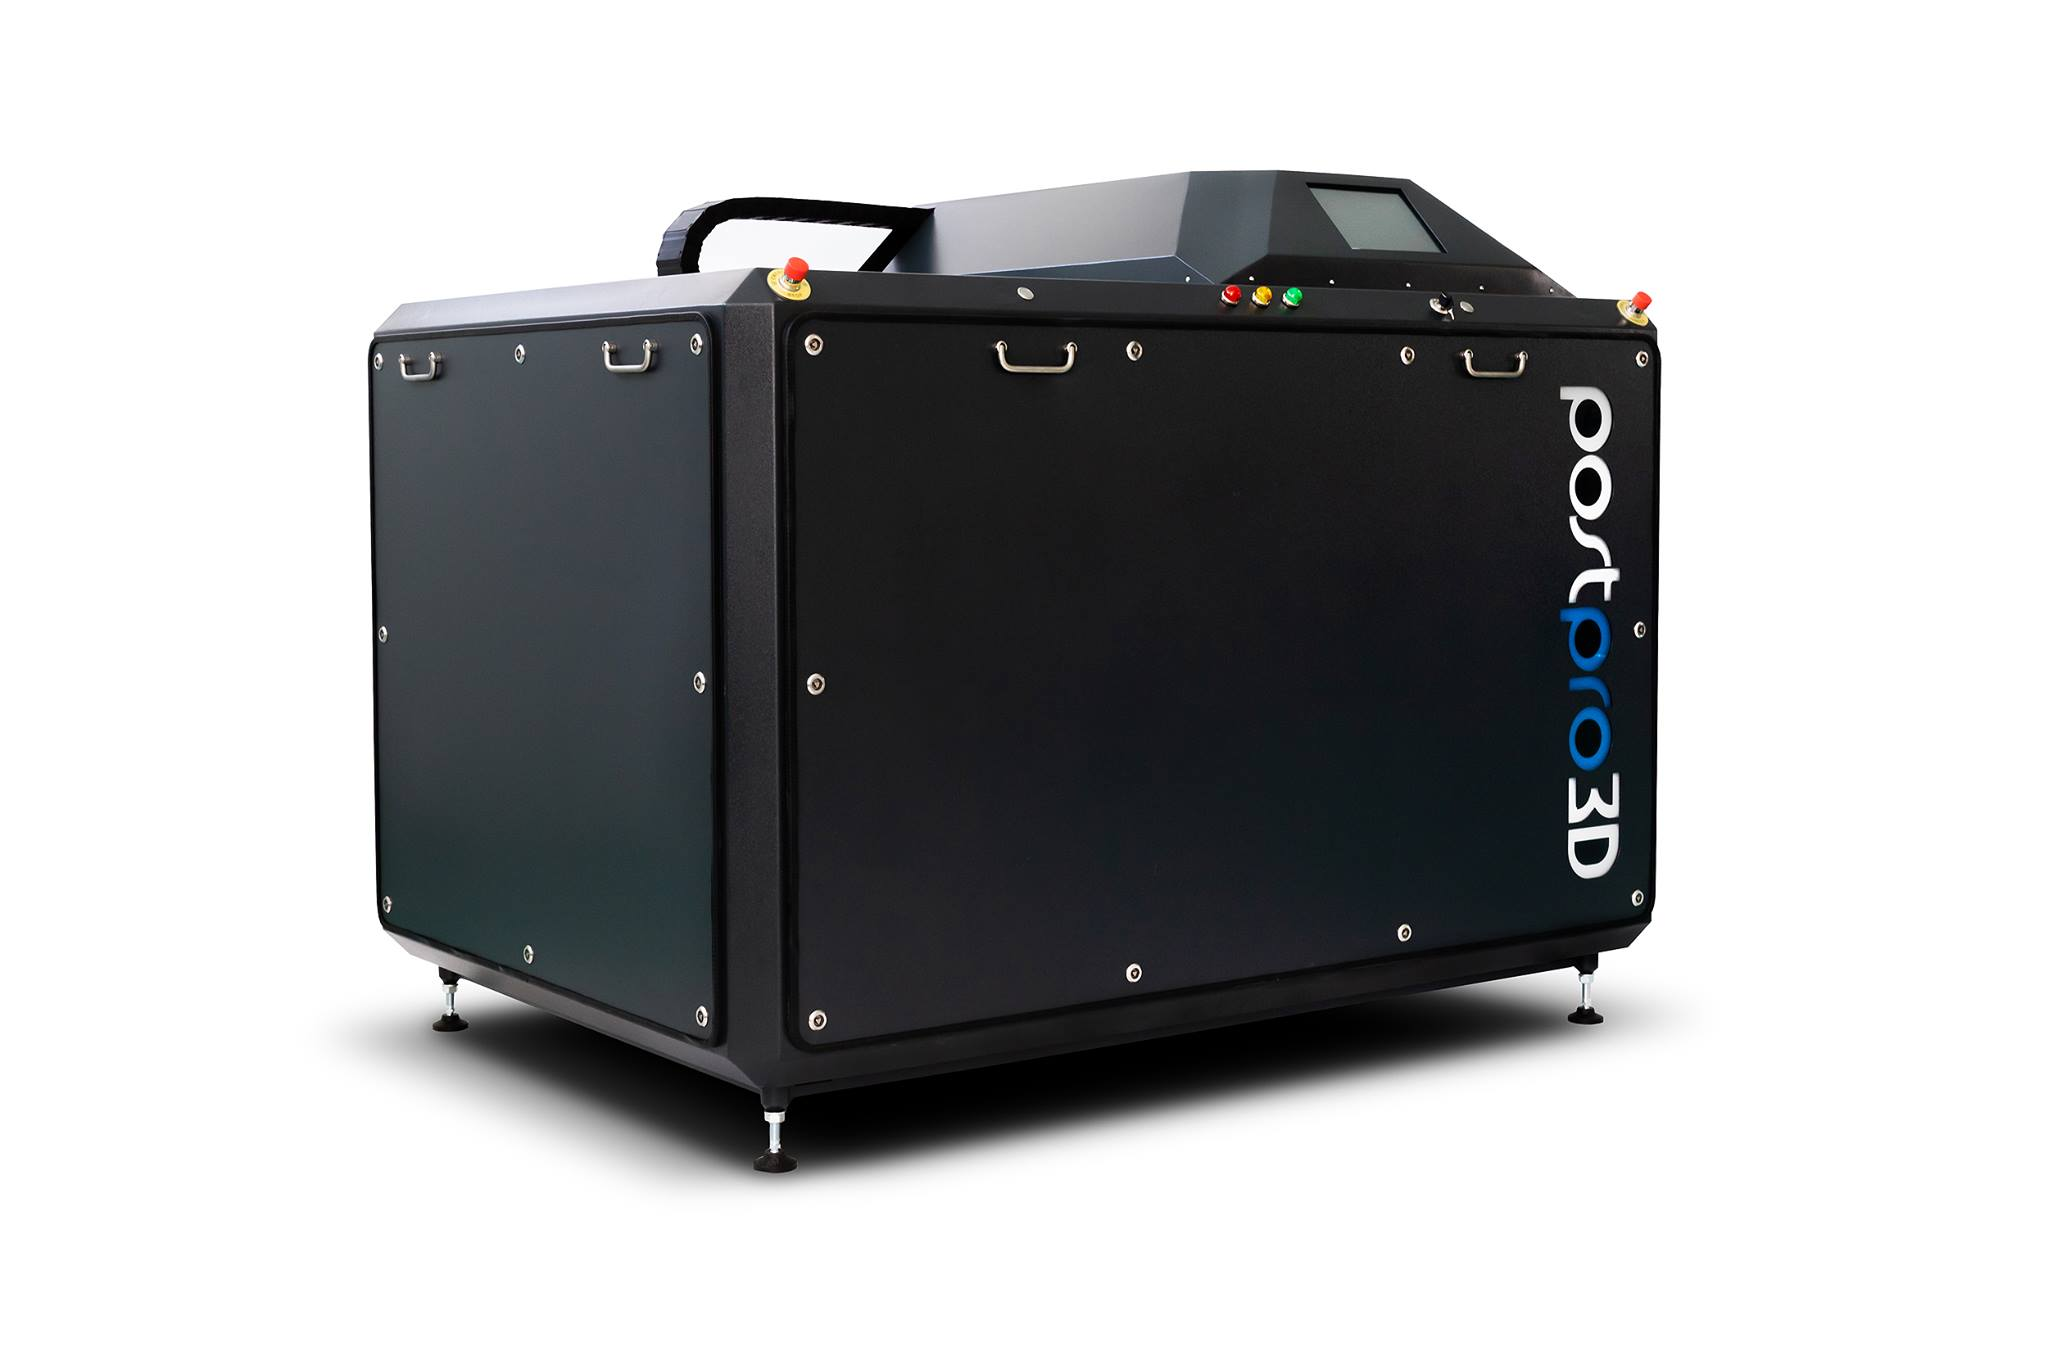 DTI has used AMT's PostPro3D (pictured) to produce food-contact related parts. Image via AMT.